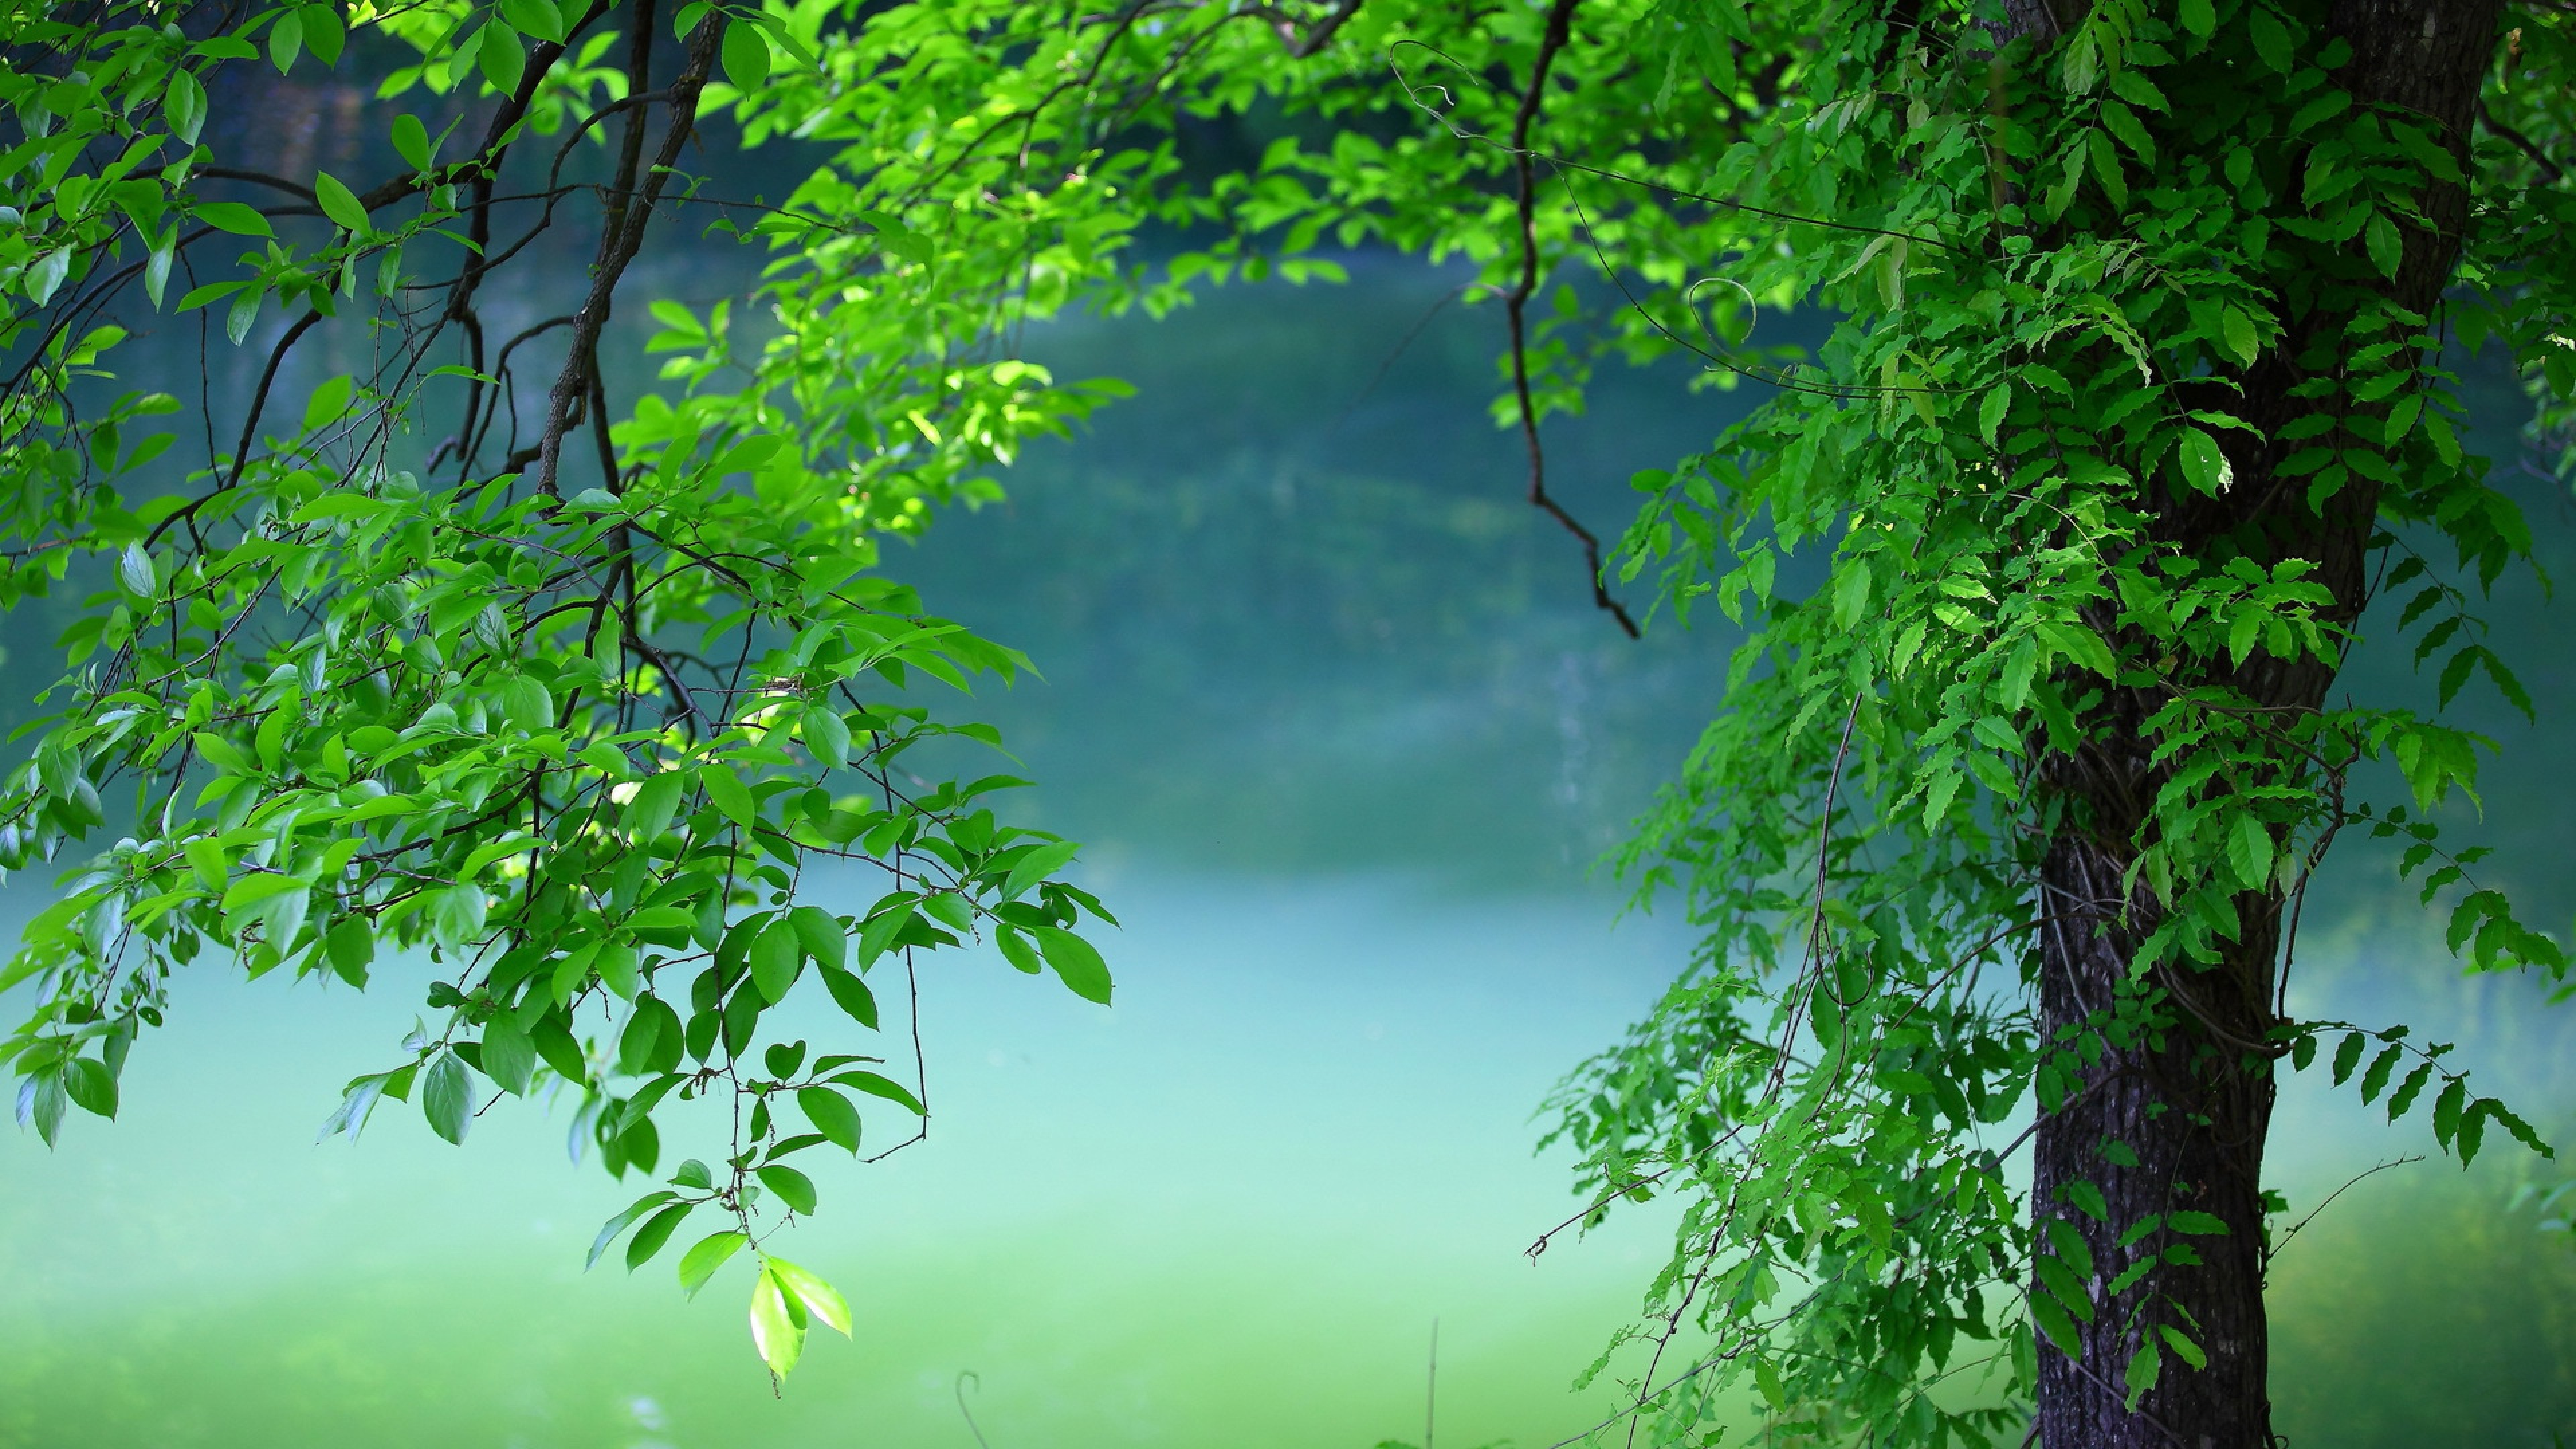 1920x1080 Tree Leaves Summer Laptop Full Hd 1080p Hd 4k Wallpapers Images Backgrounds Photos And Pictures